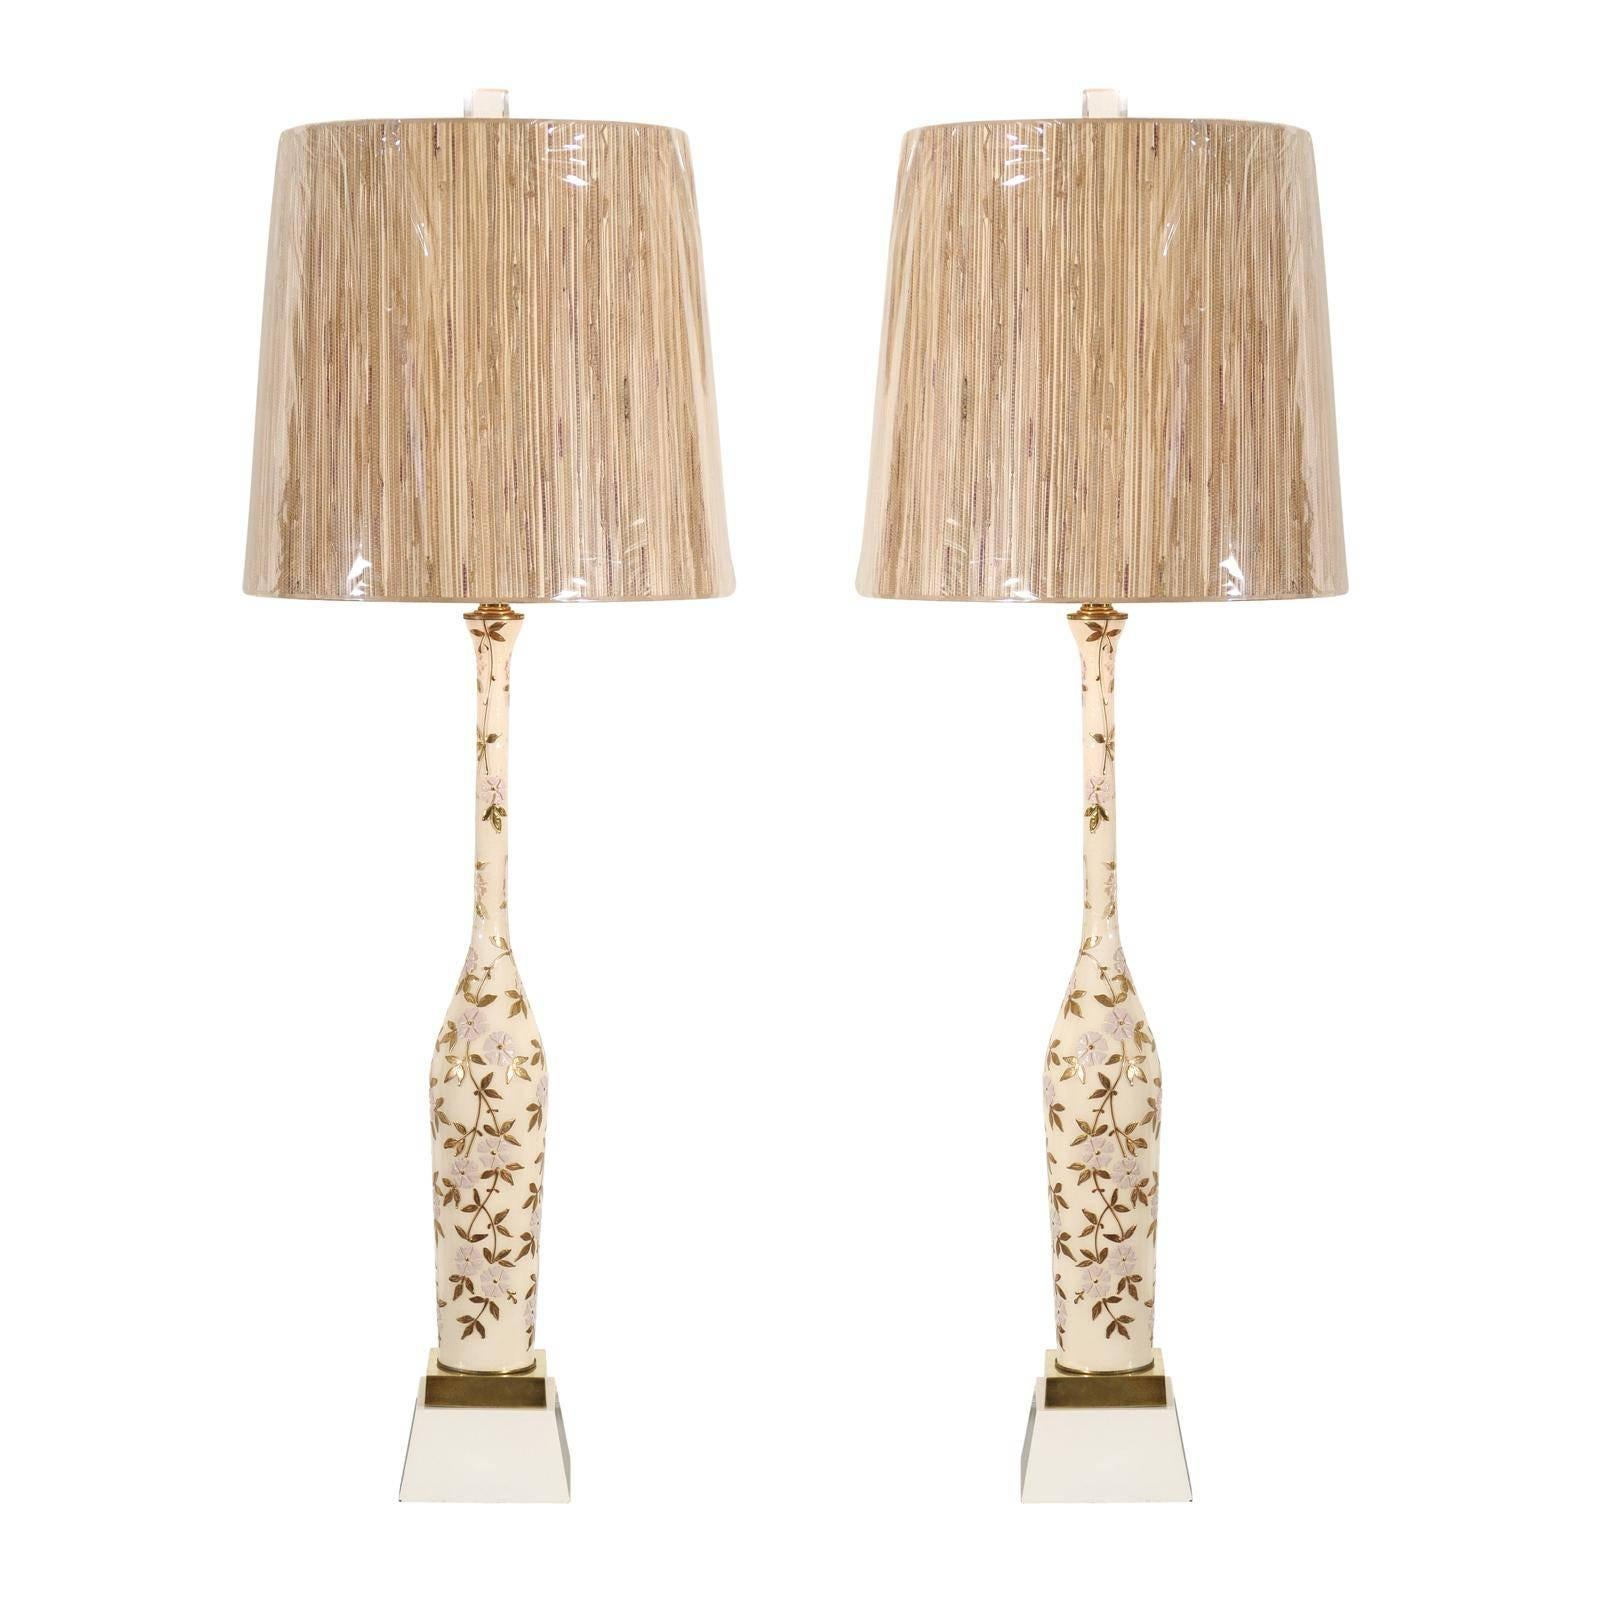 Amazing Pair of Monumental Hand-Painted Blown Glass Lamps